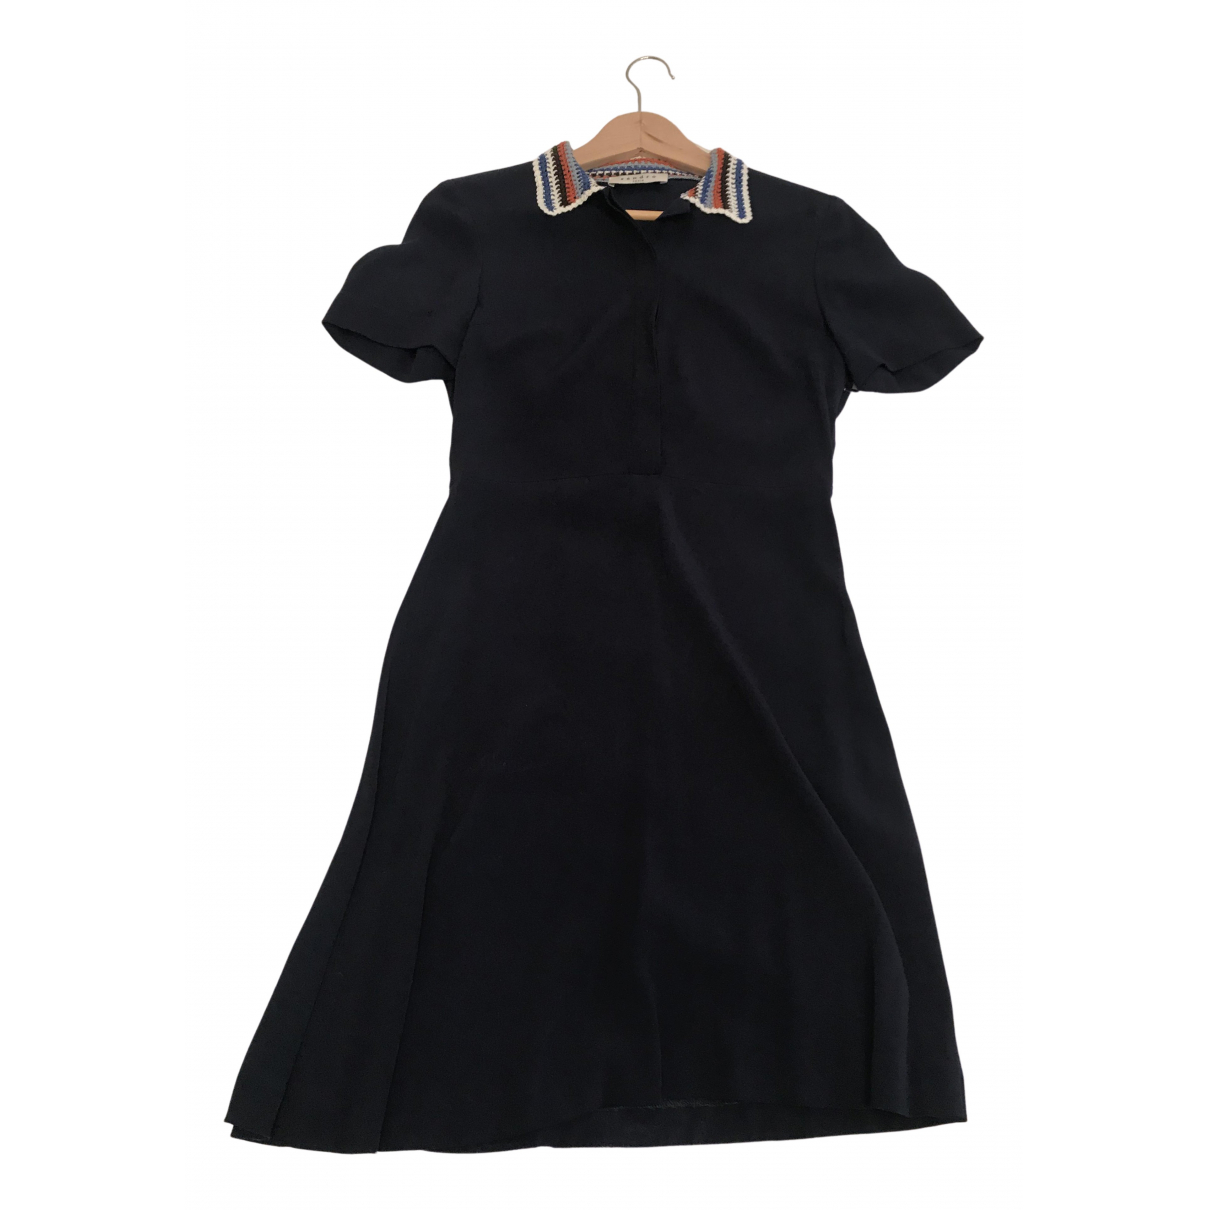 Sandro N Navy dress for Women 1 0-5